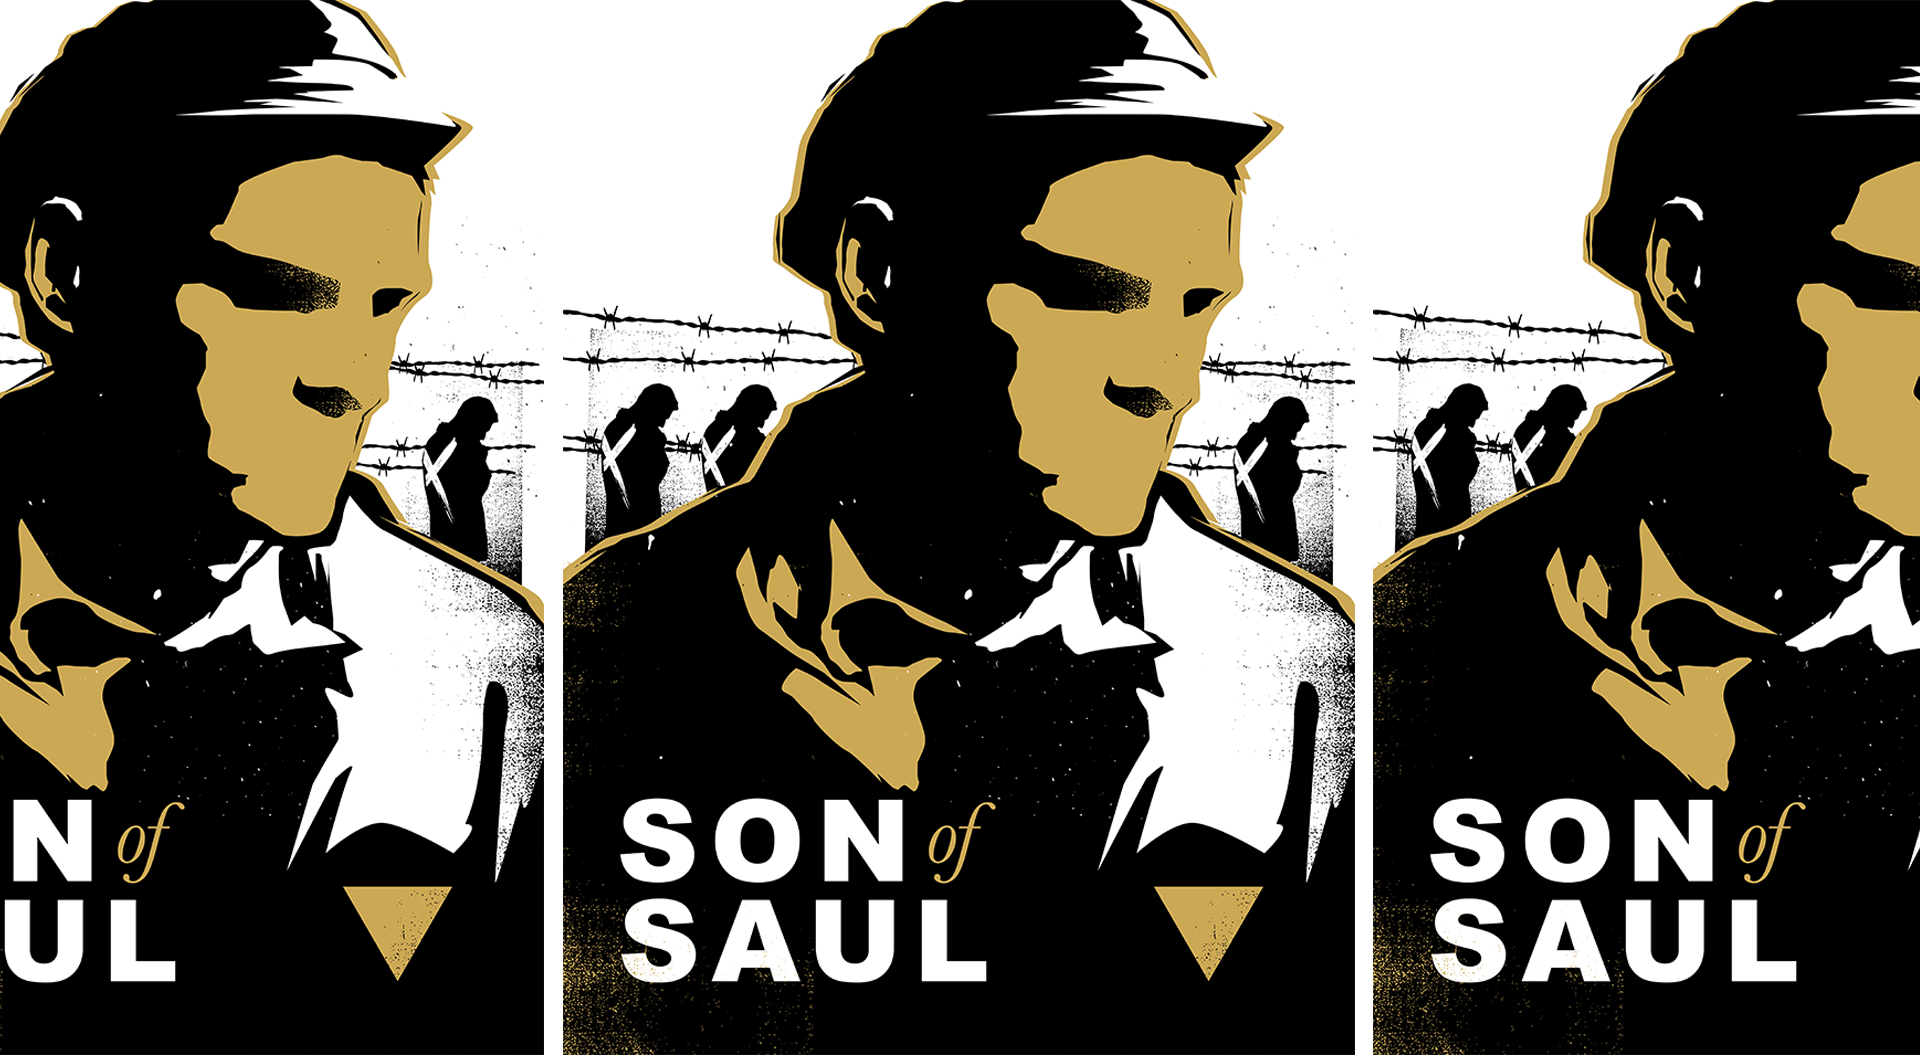 sonofsaul-3.png